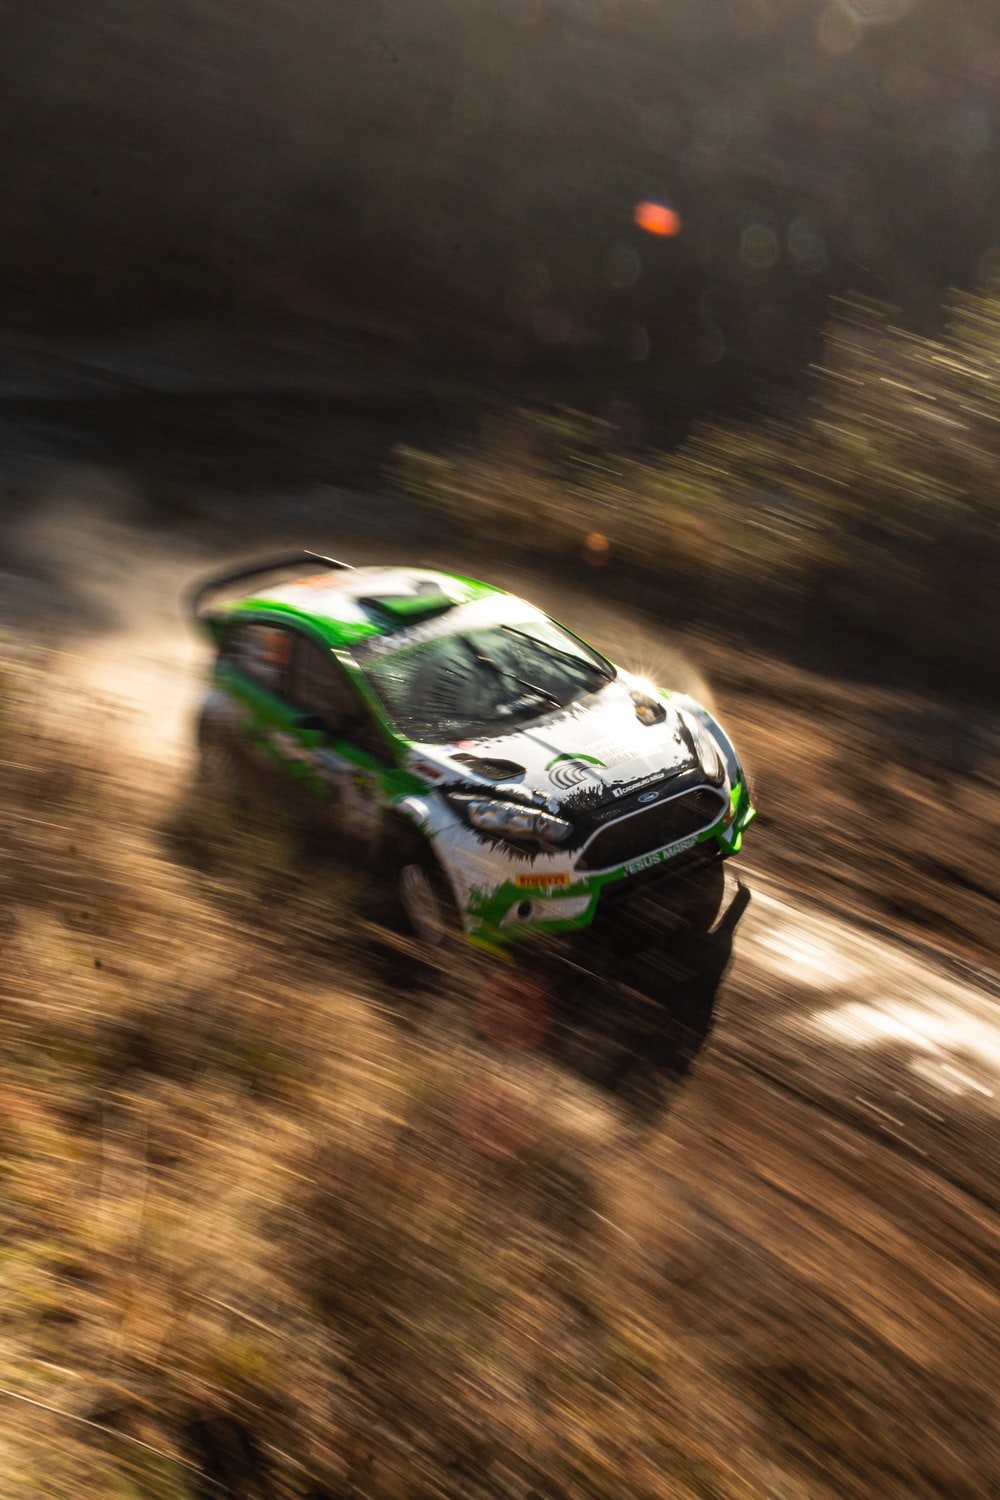 white and green racing car on dirt road